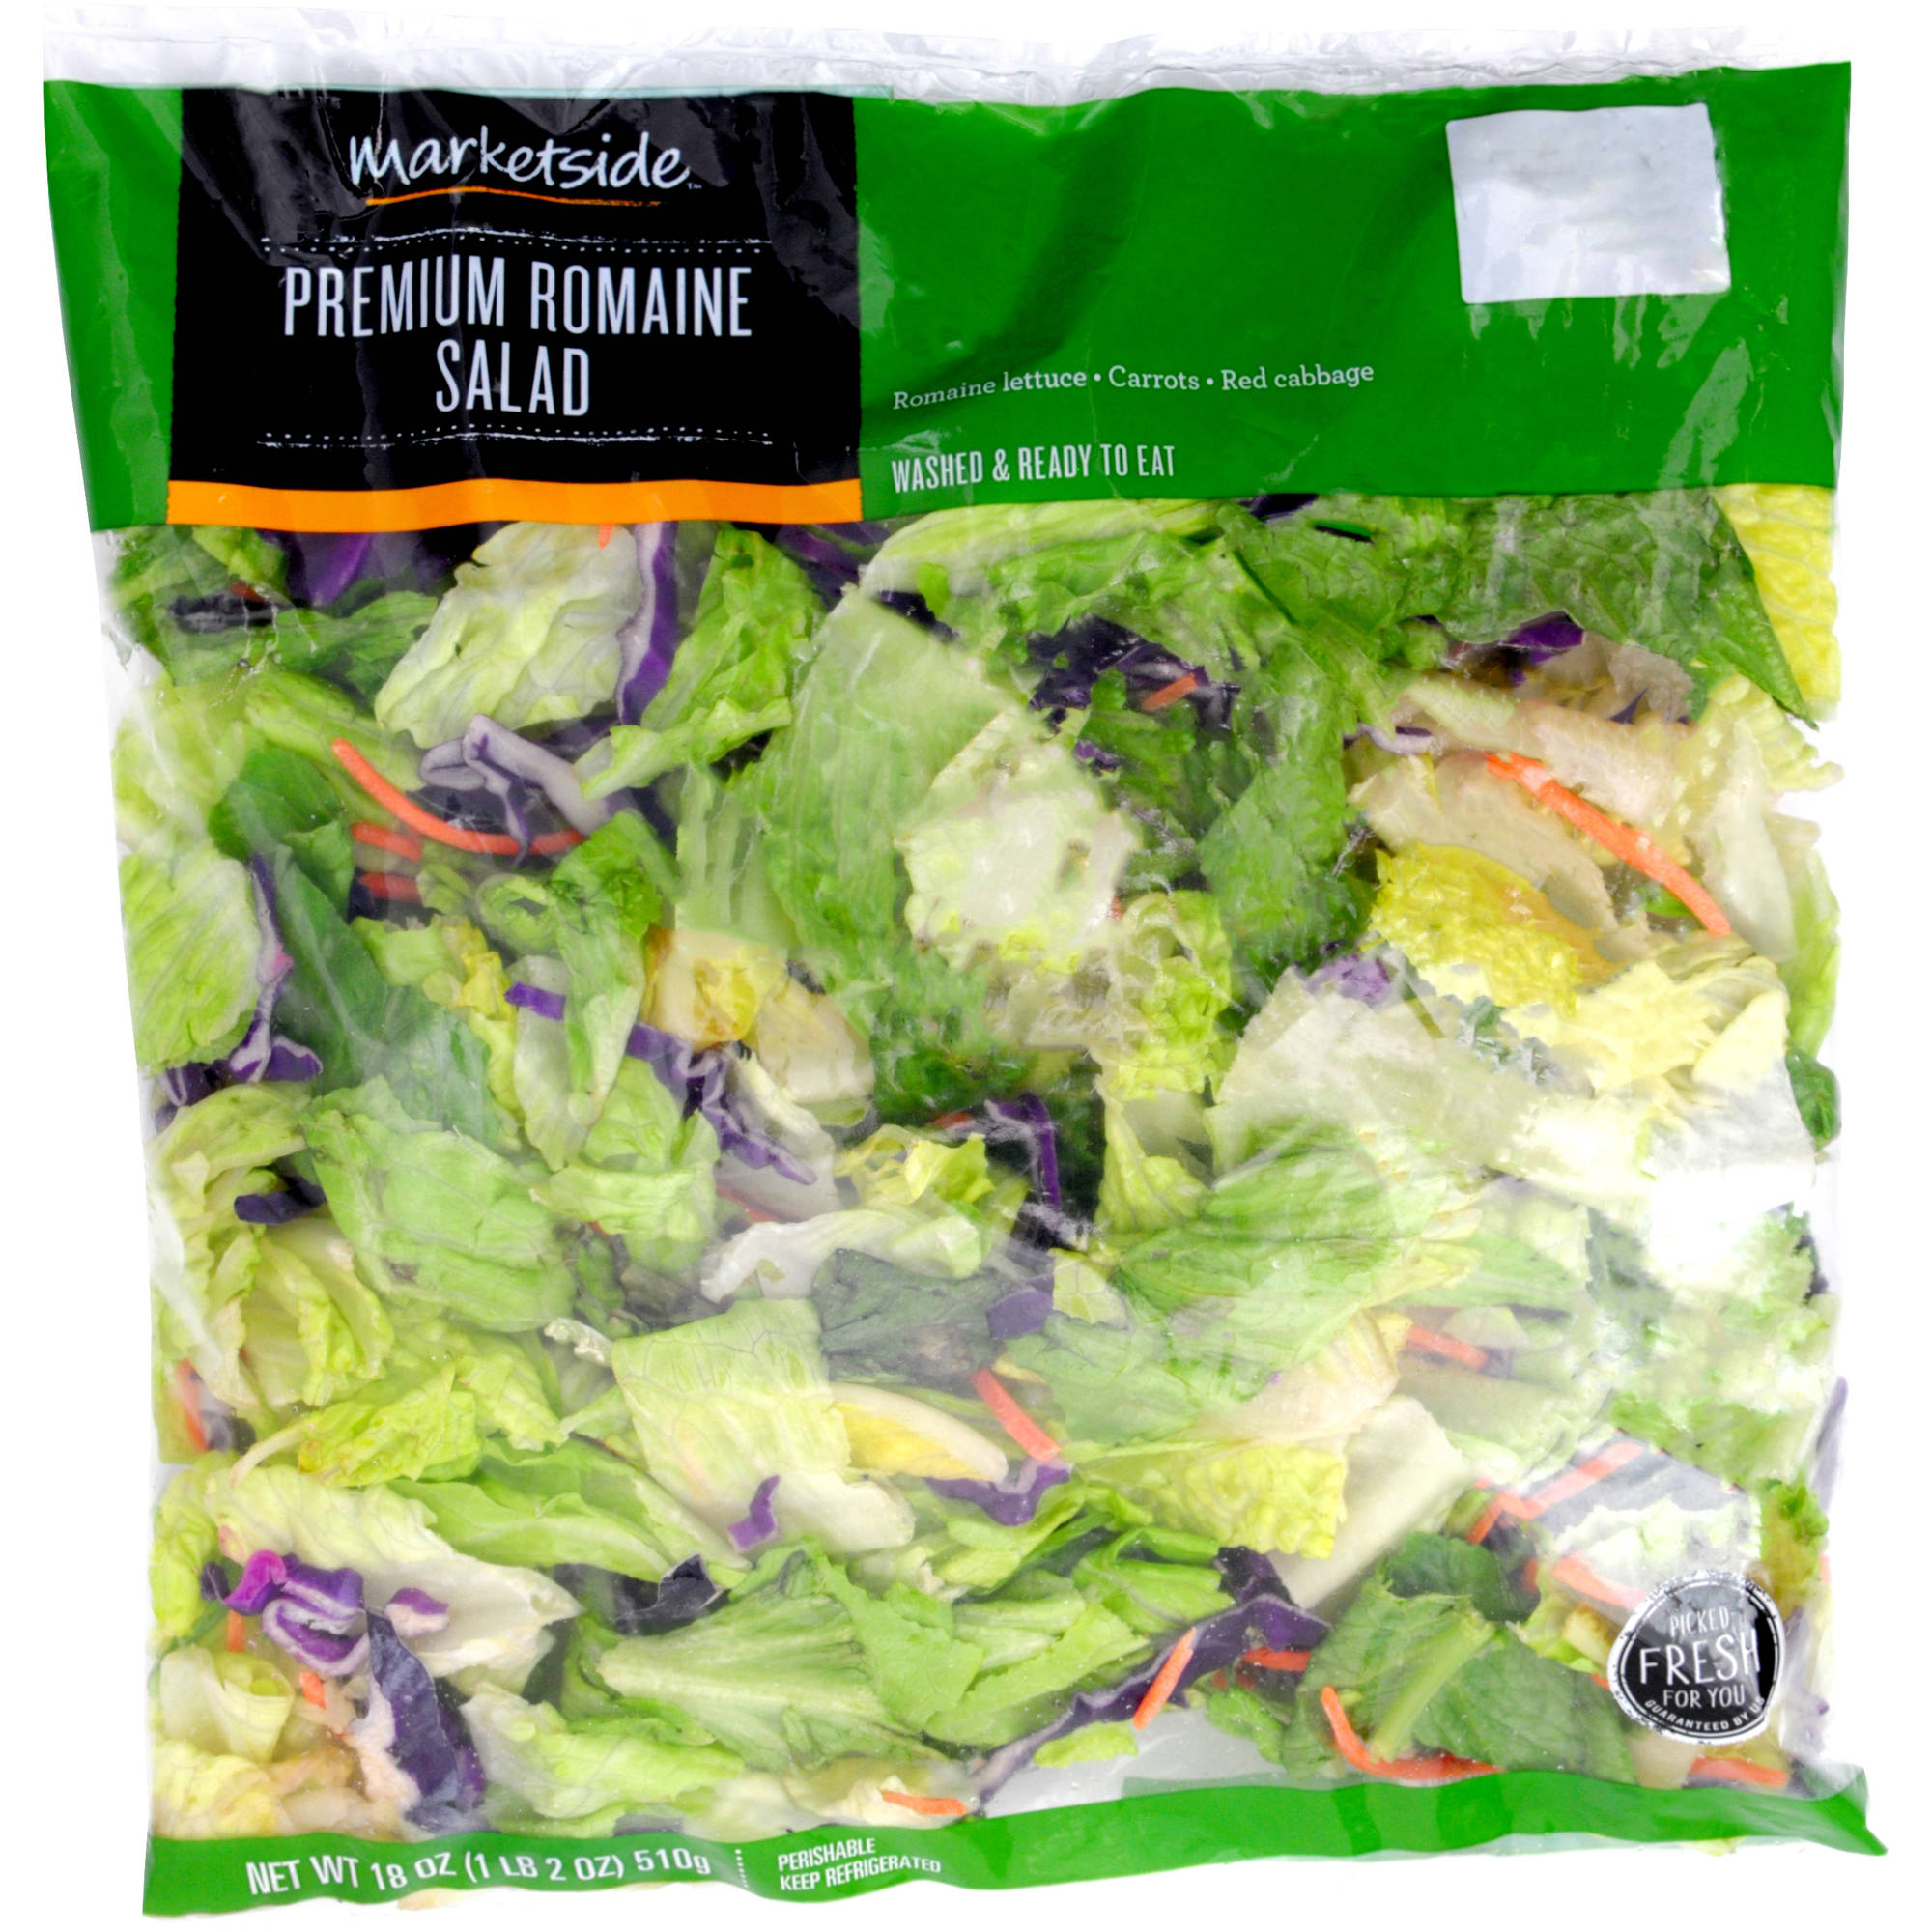 Marketside Premium Romaine Salad, 18 oz